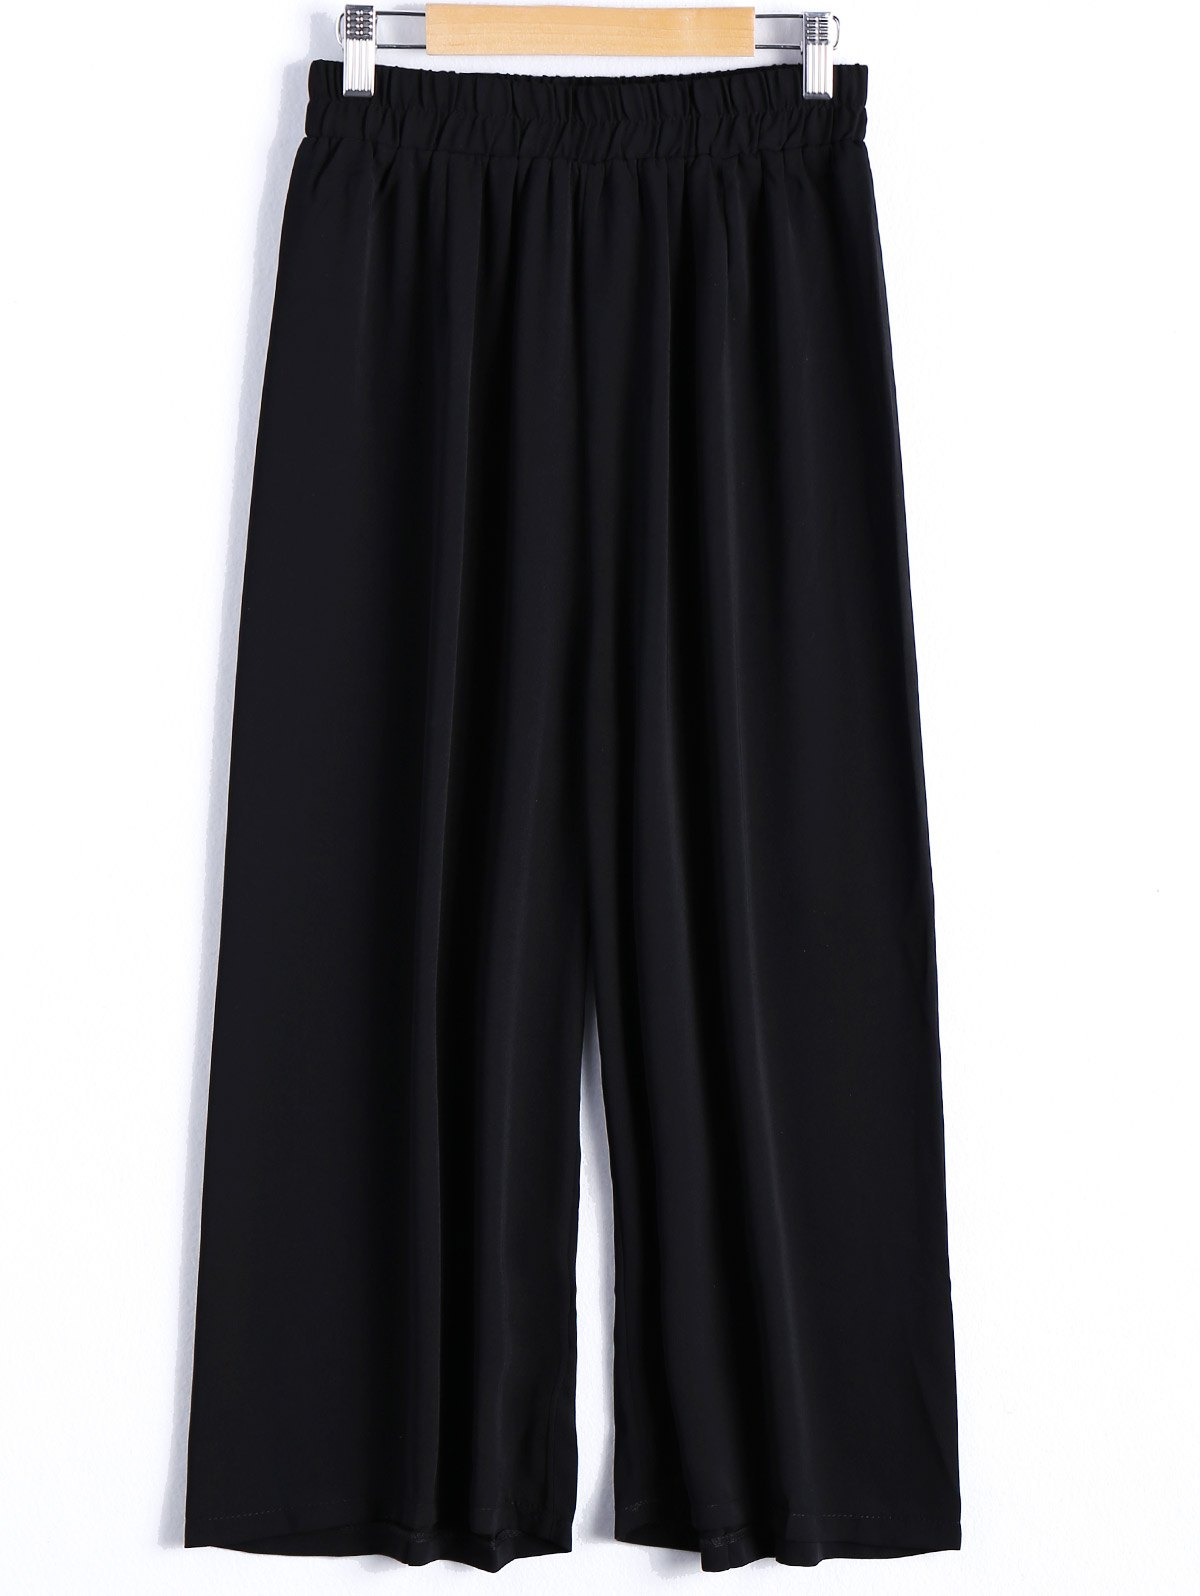 Casual Women's Elastic Waist Wide Leg Pants - ONE SIZE(FIT SIZE XS TO M) BLACK